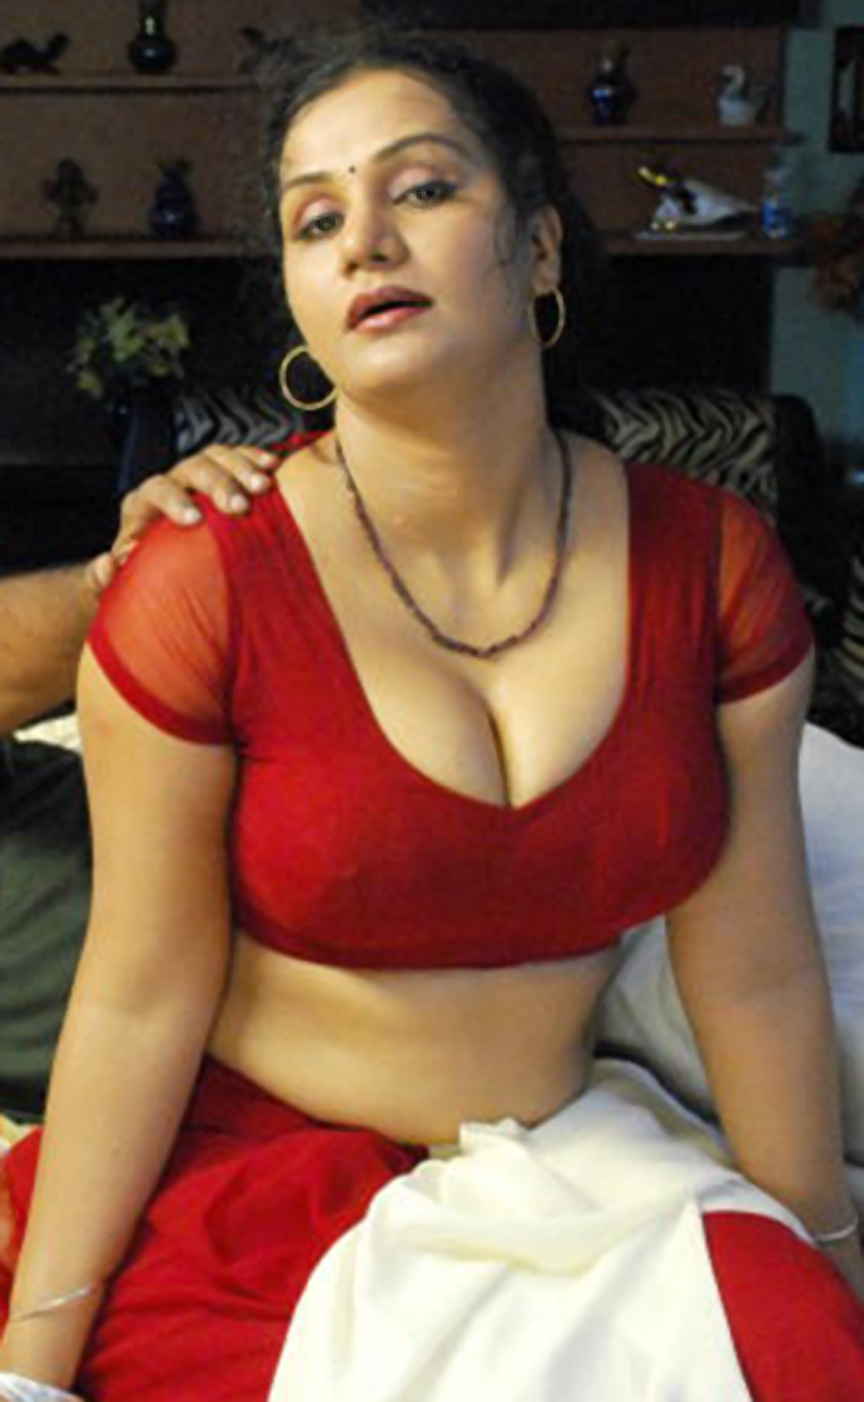 Actress roshni in scene from a mallu movie 1